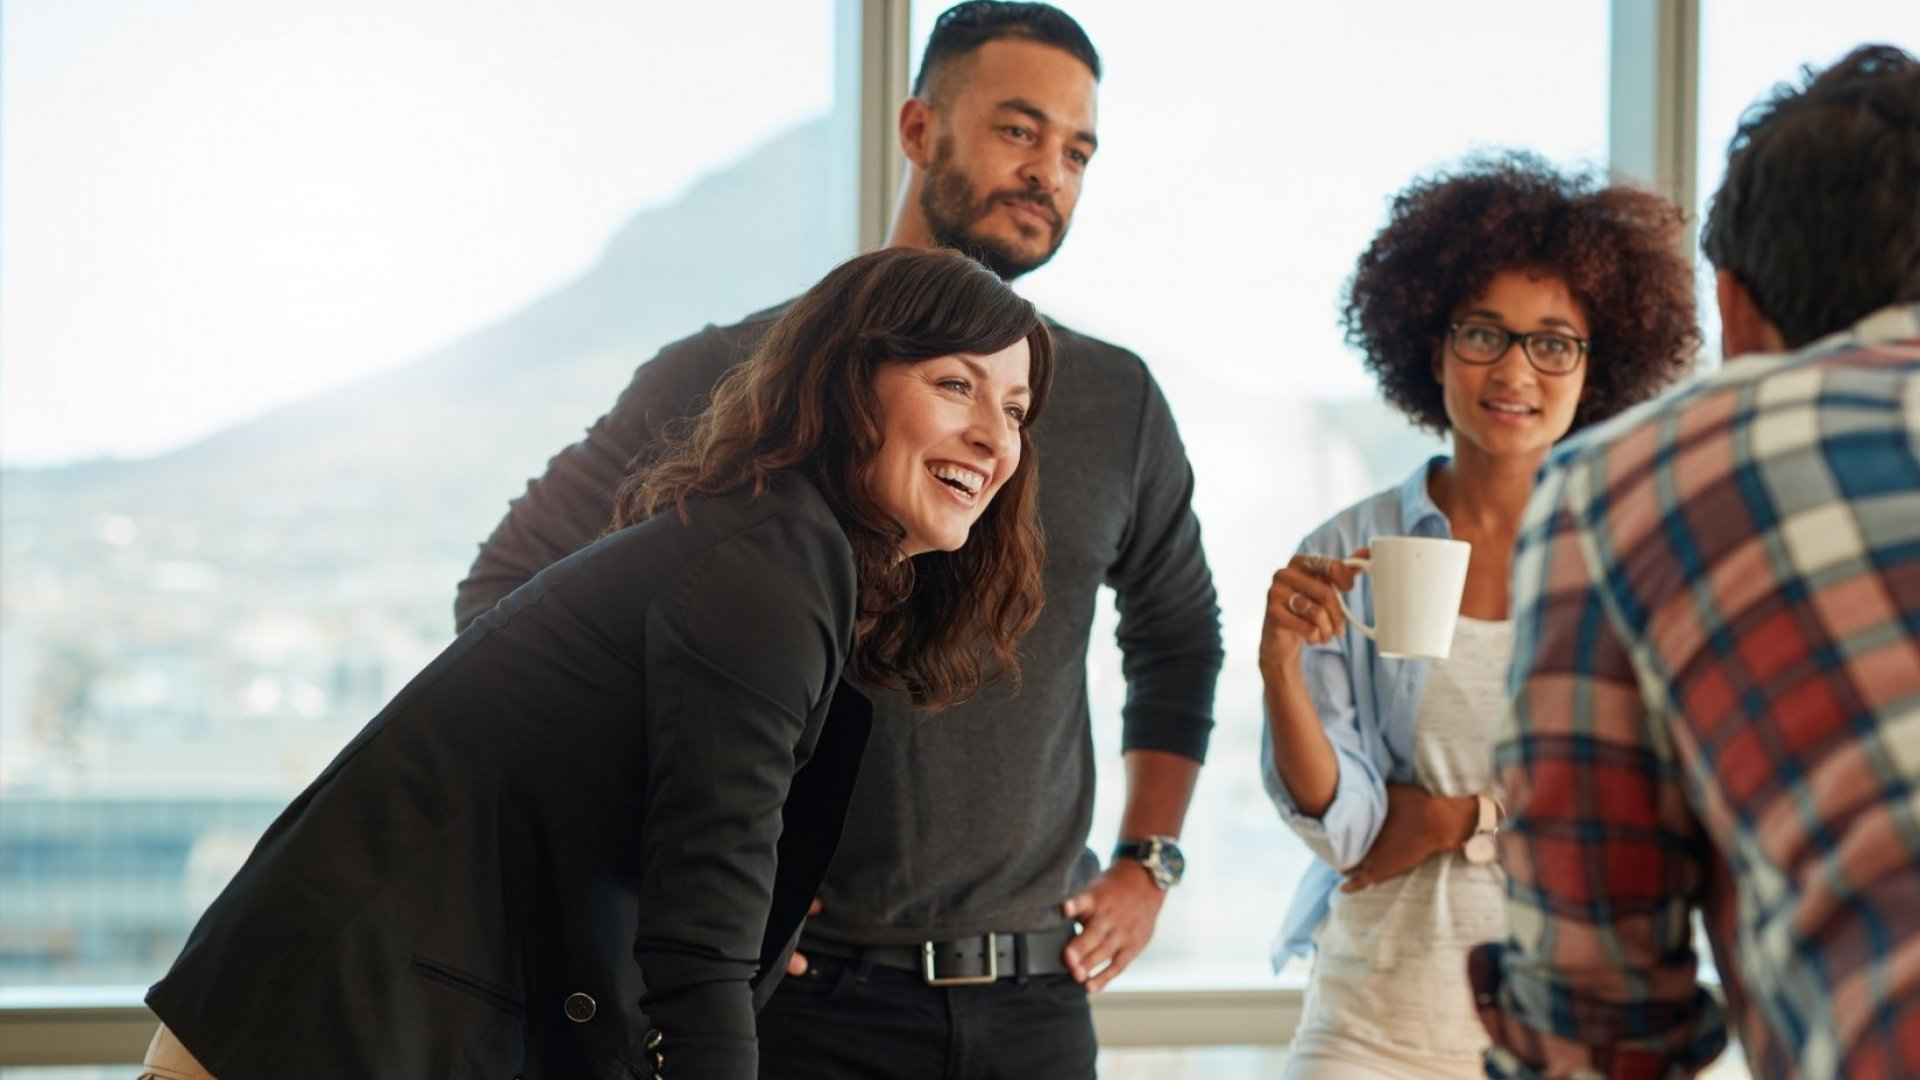 Science: Workplace Gratitude Has a Tremendously Positive Impact on Those Around You (Here's Why)